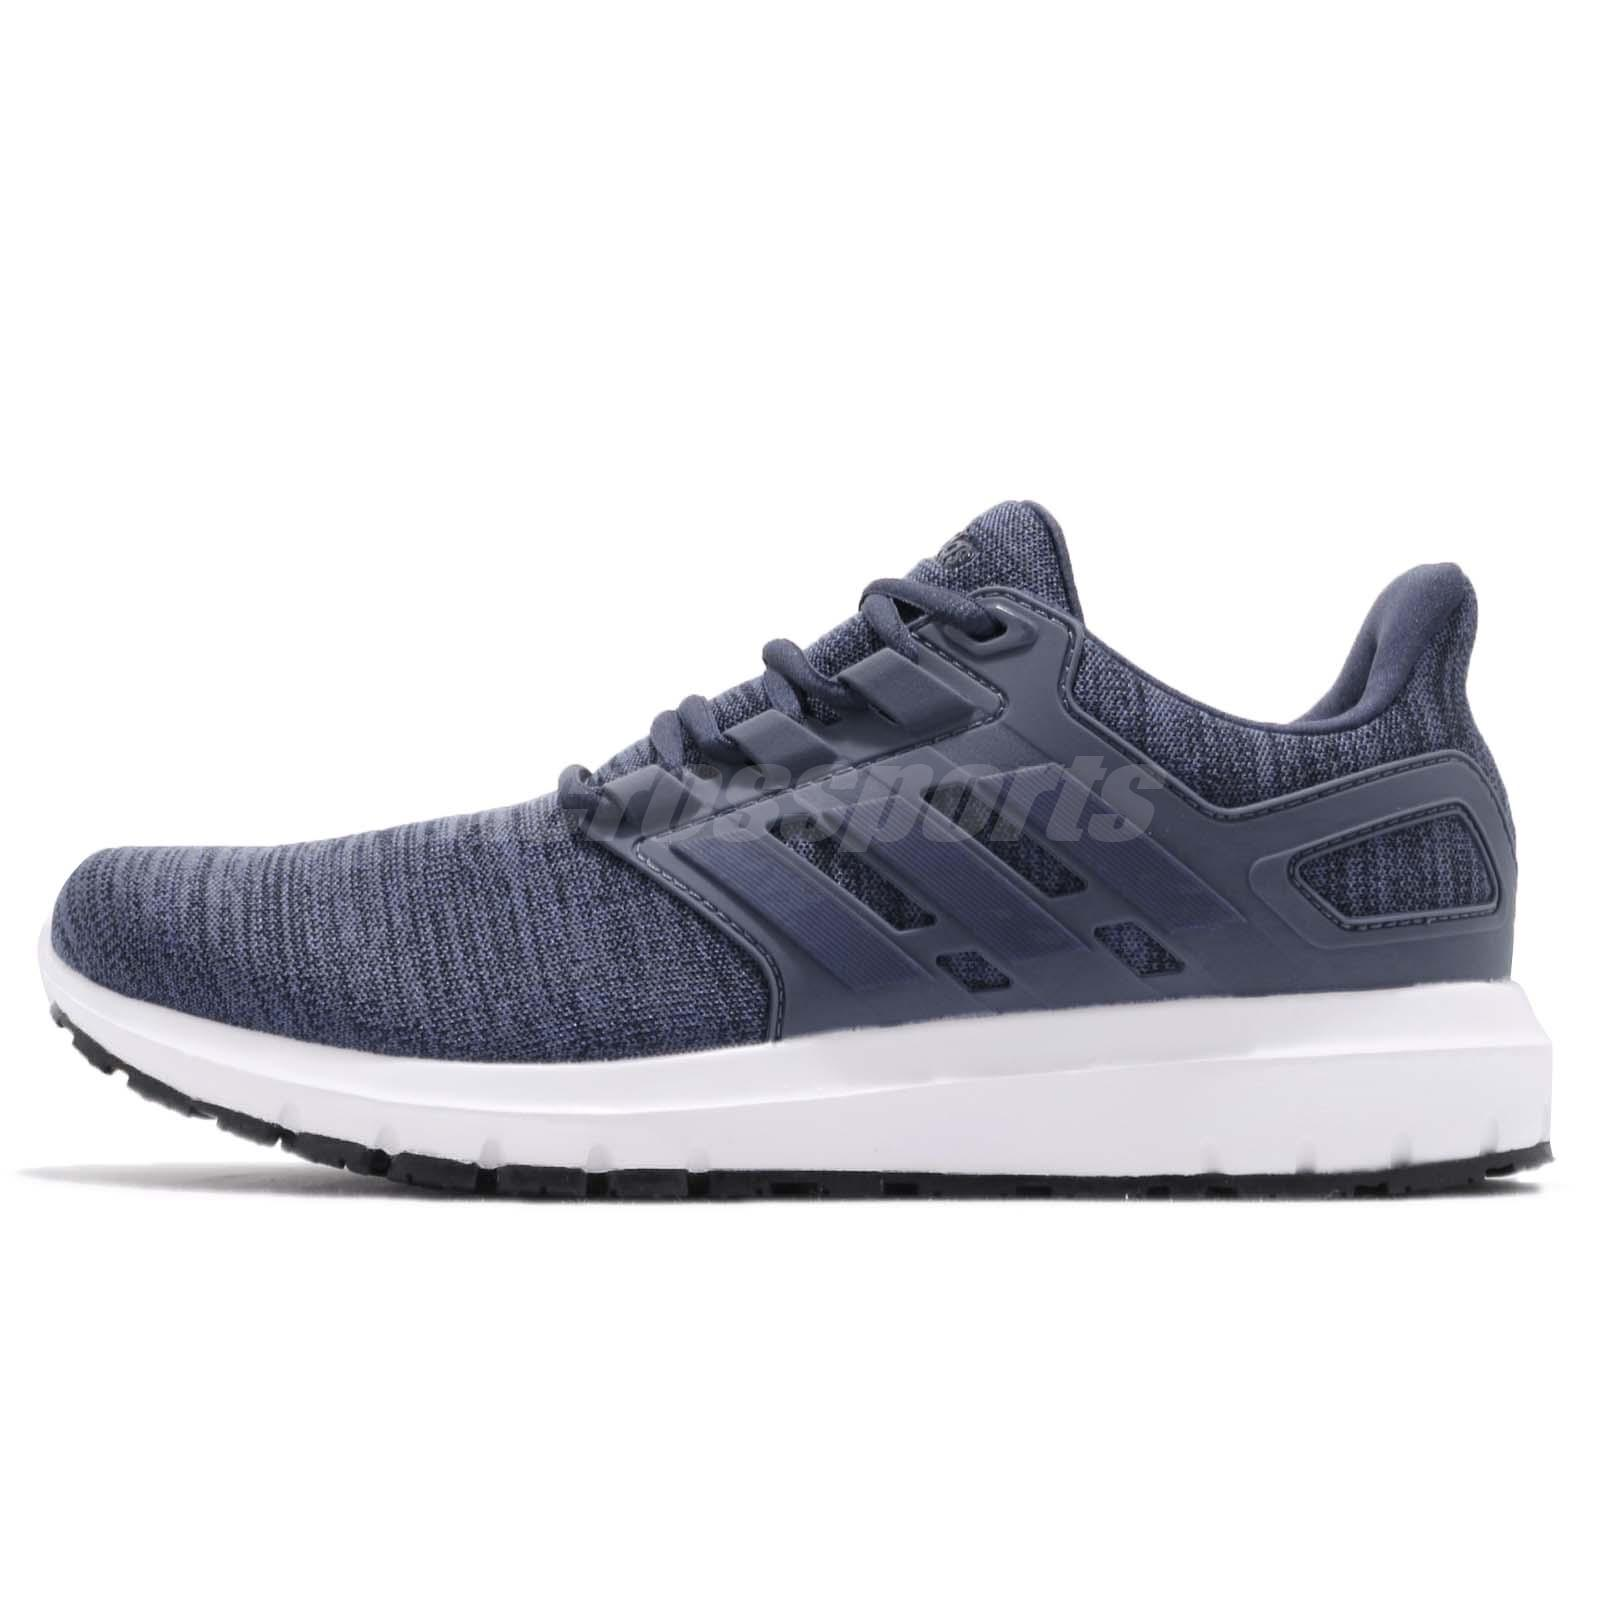 finest selection 06355 6ff73 Details about adidas Energy Cloud 2 Trace Blue White Men Running Casual Shoes  Sneakers B44770